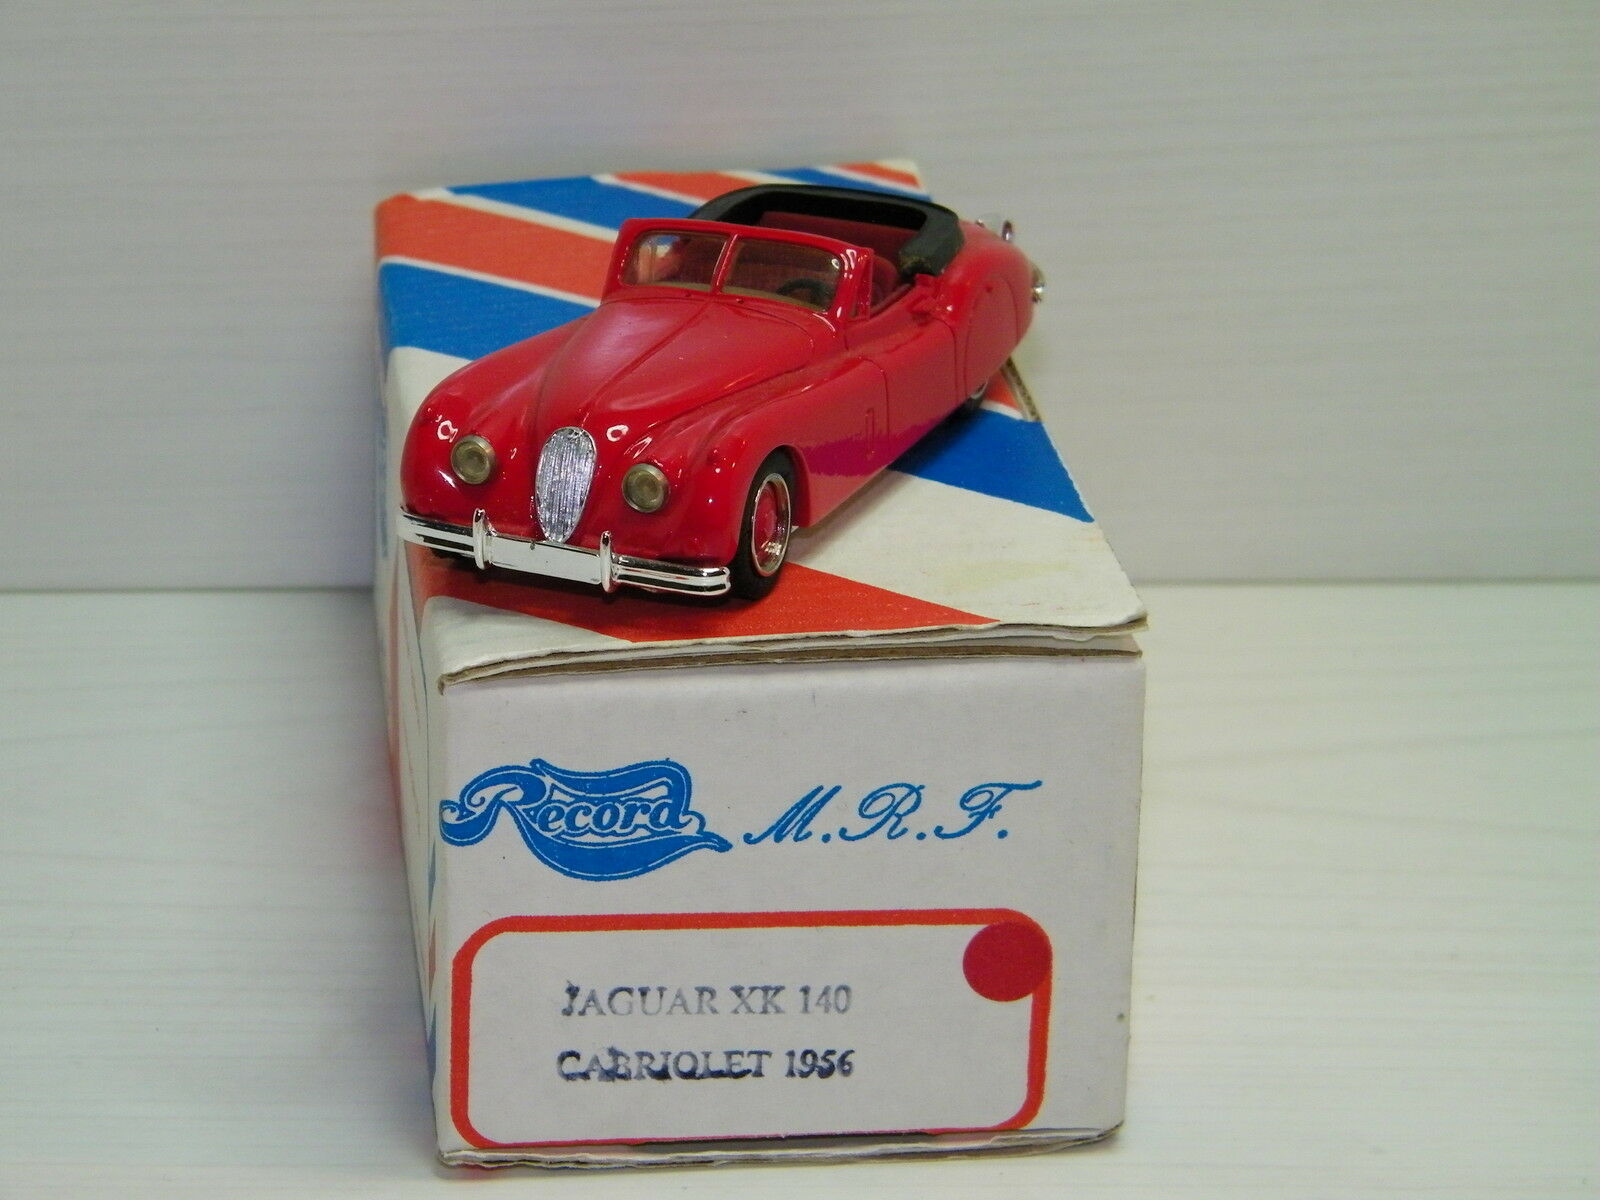 KIT RECORD - JAGUAR XK 140 CABRIOLET 1956 ROUGE